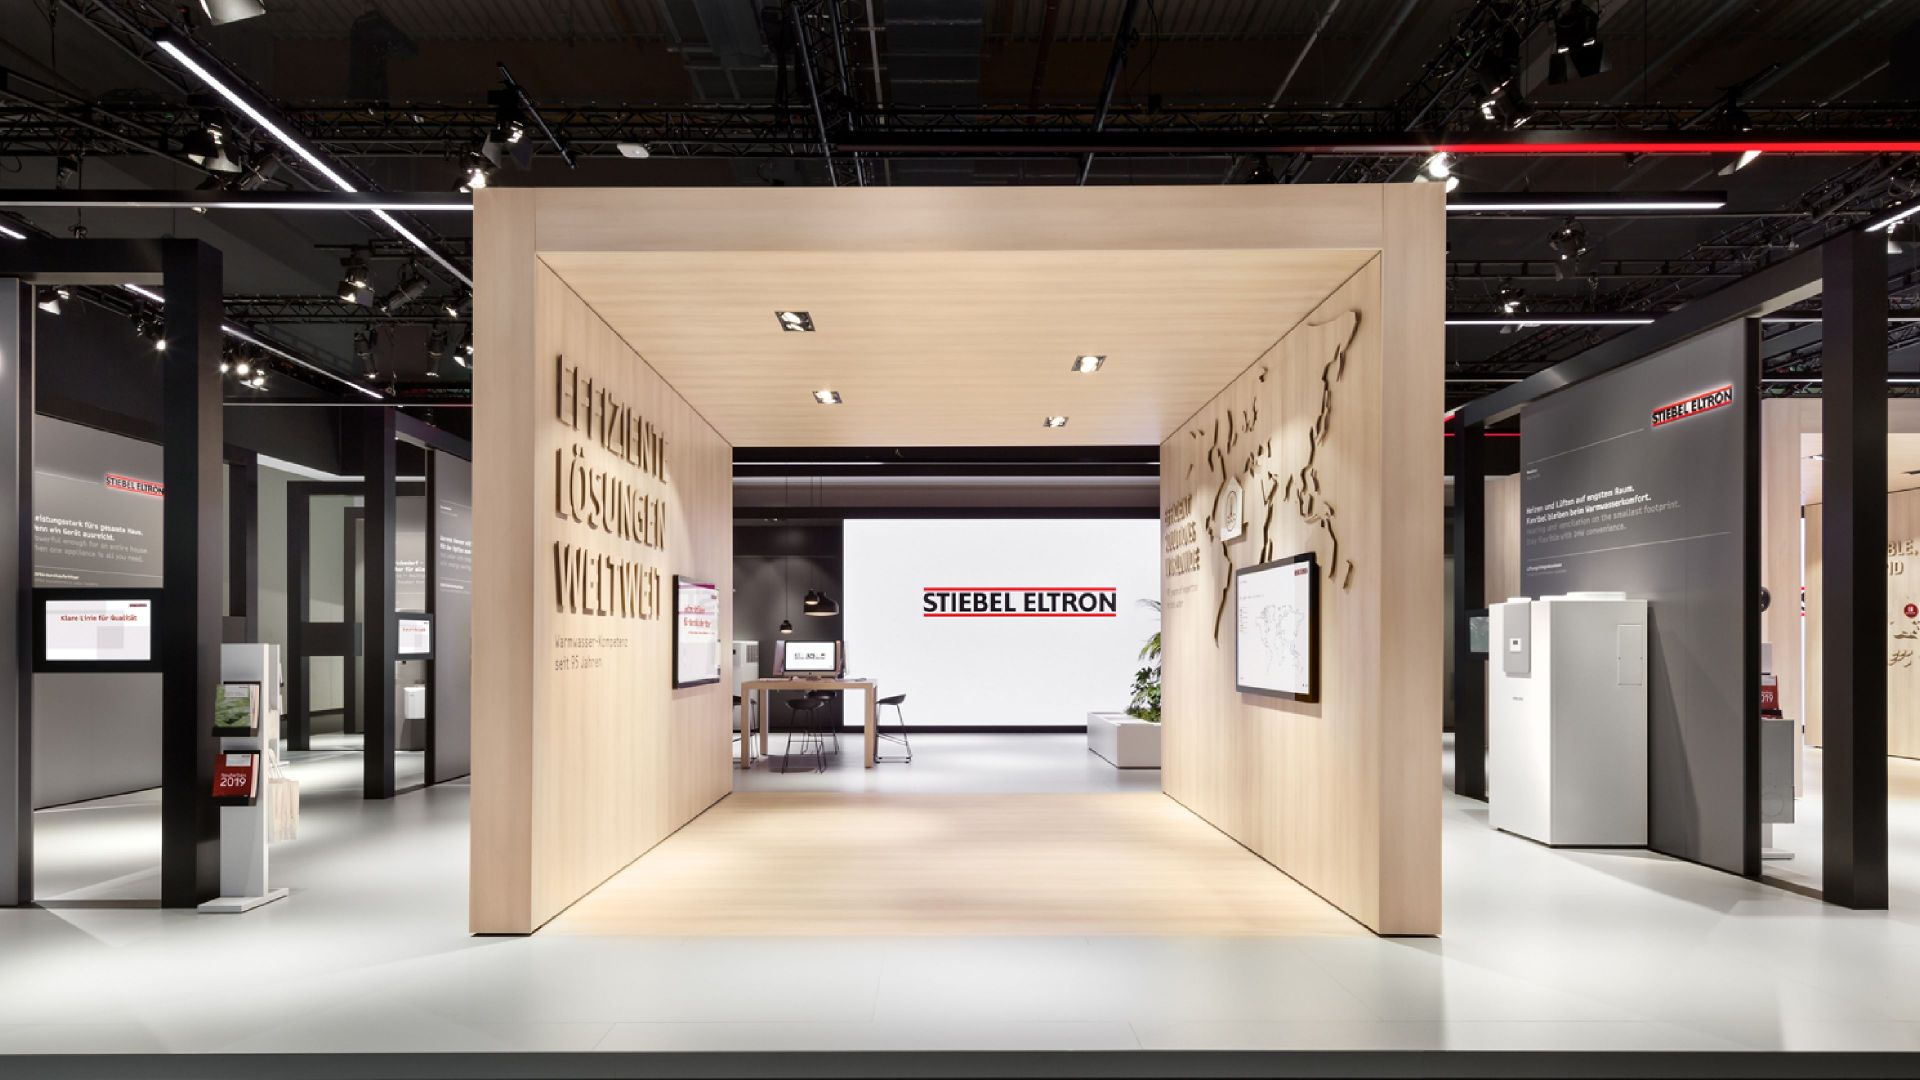 Stiebel Eltron - ISH 2019 - Multitouch - Large Format Display - Interactive Experience - realtime visions